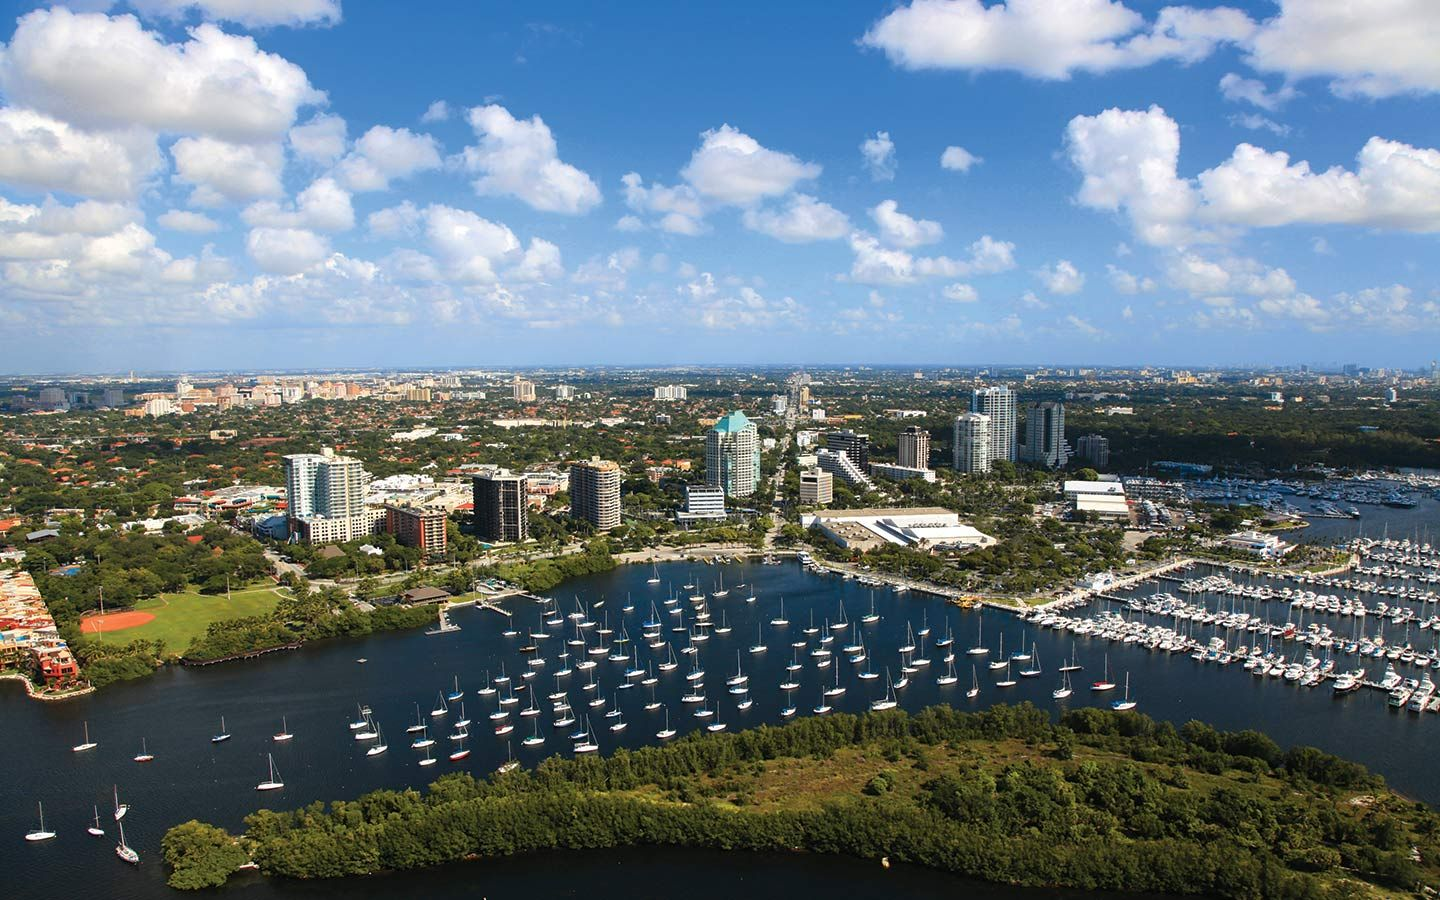 How To Get To Coconut Grove